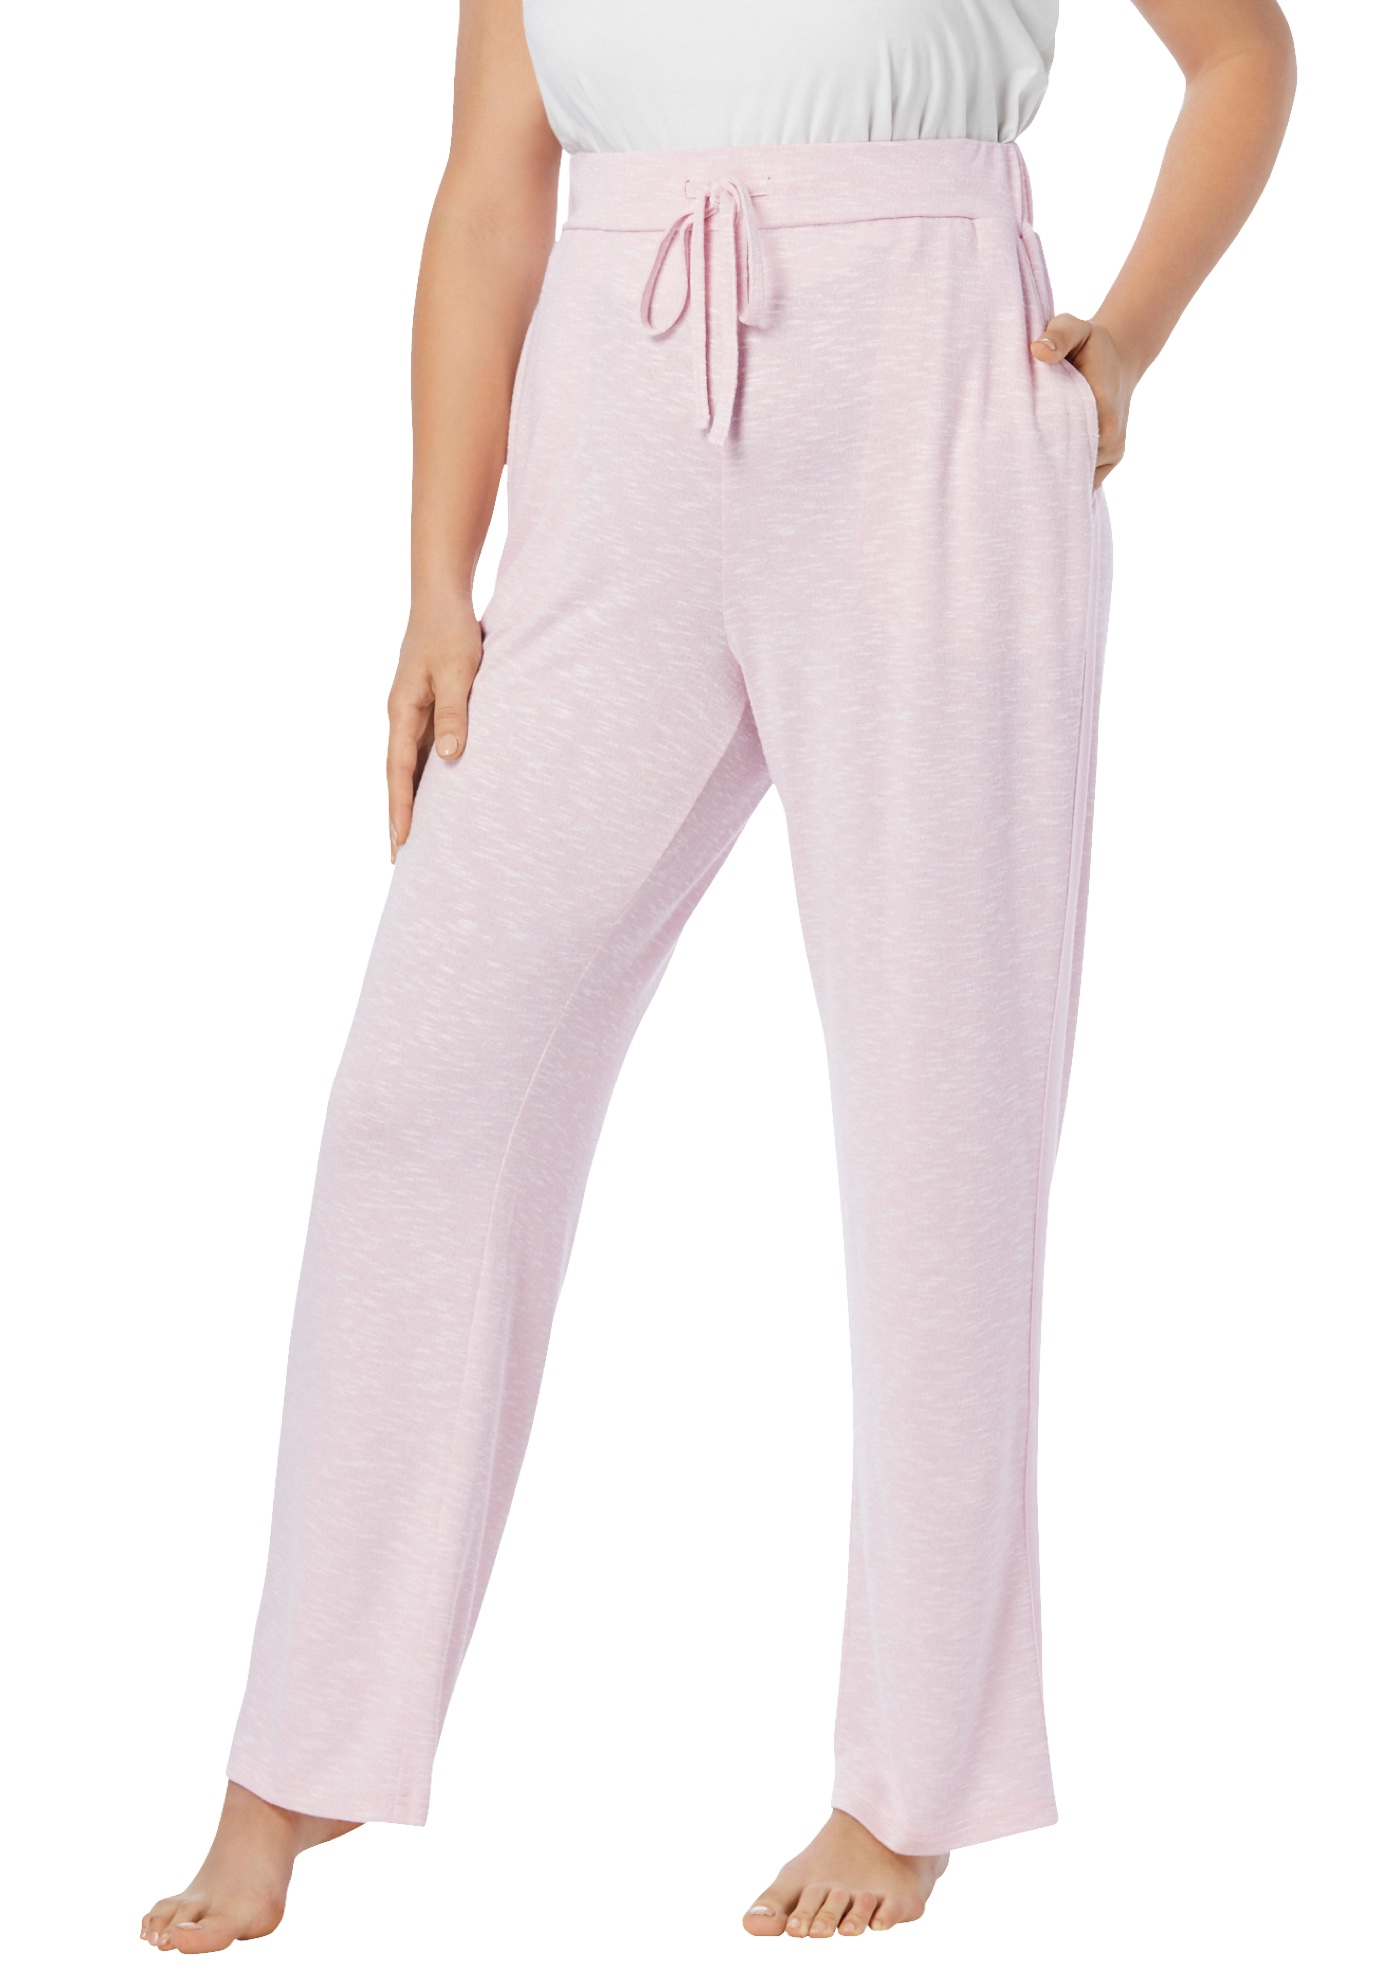 Plus Size Women's Supersoft Lounge Pant by Dreams & Co. in Pink Marled (Size 34/36)